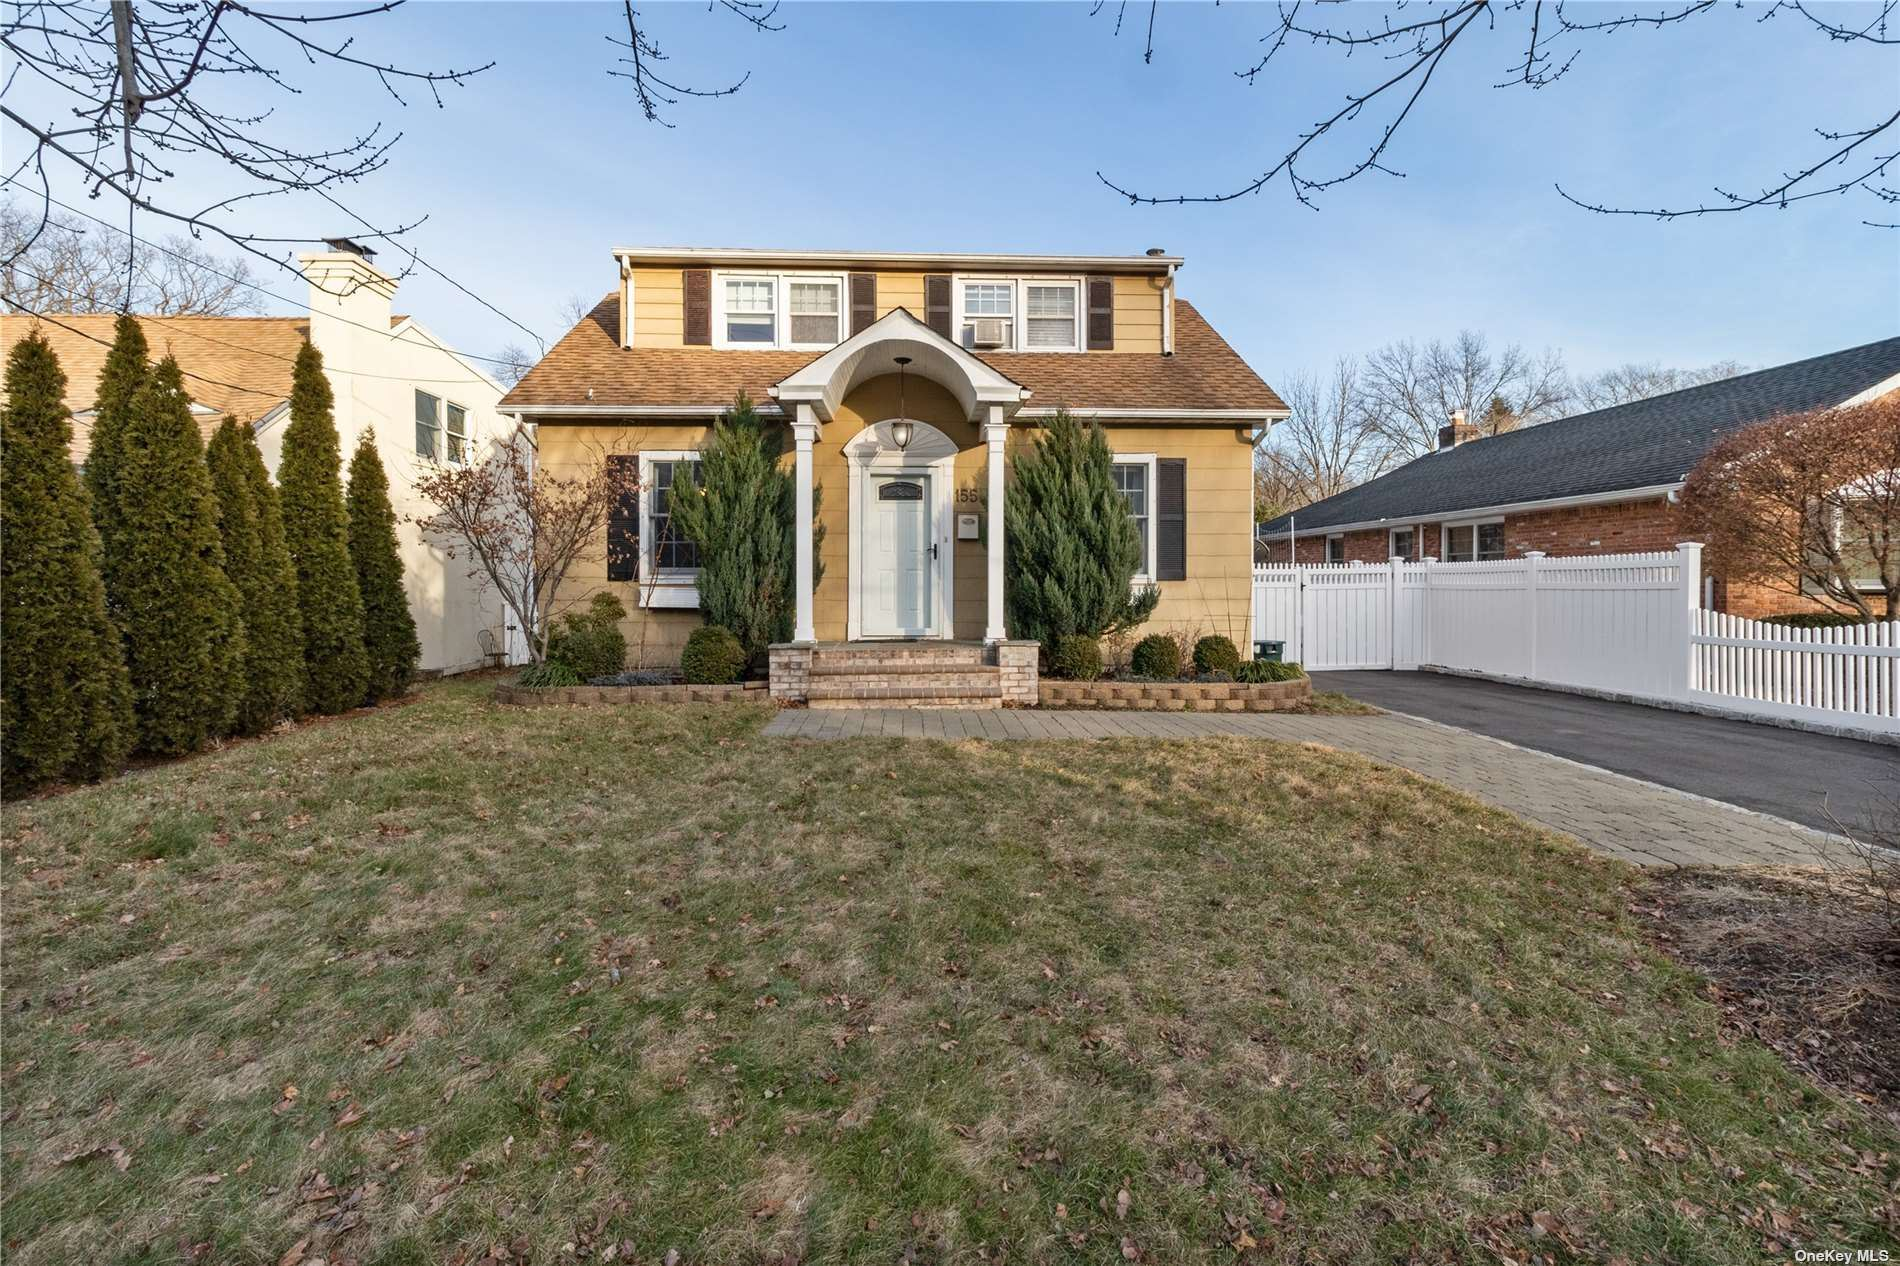 Photo of 155 Summers Street, Oyster Bay, NY 11771 (MLS # 3317731)